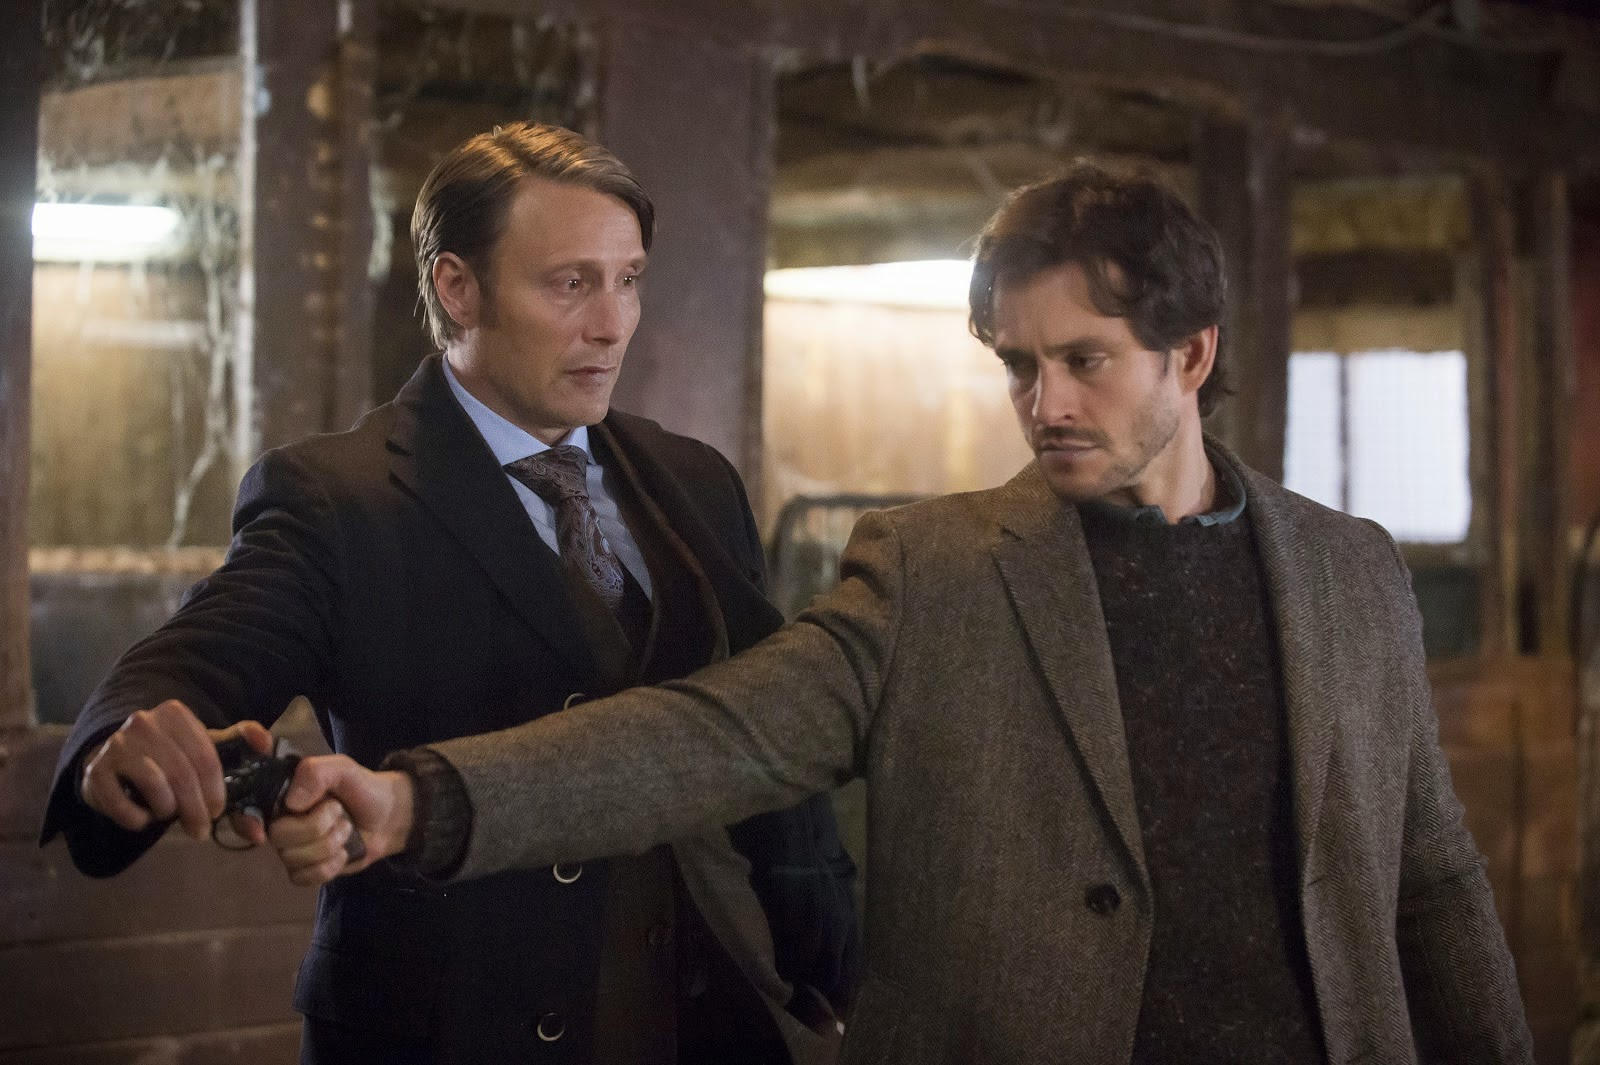 Hannibal Episode 8 Recap: You Can Lead A Fish To Water But